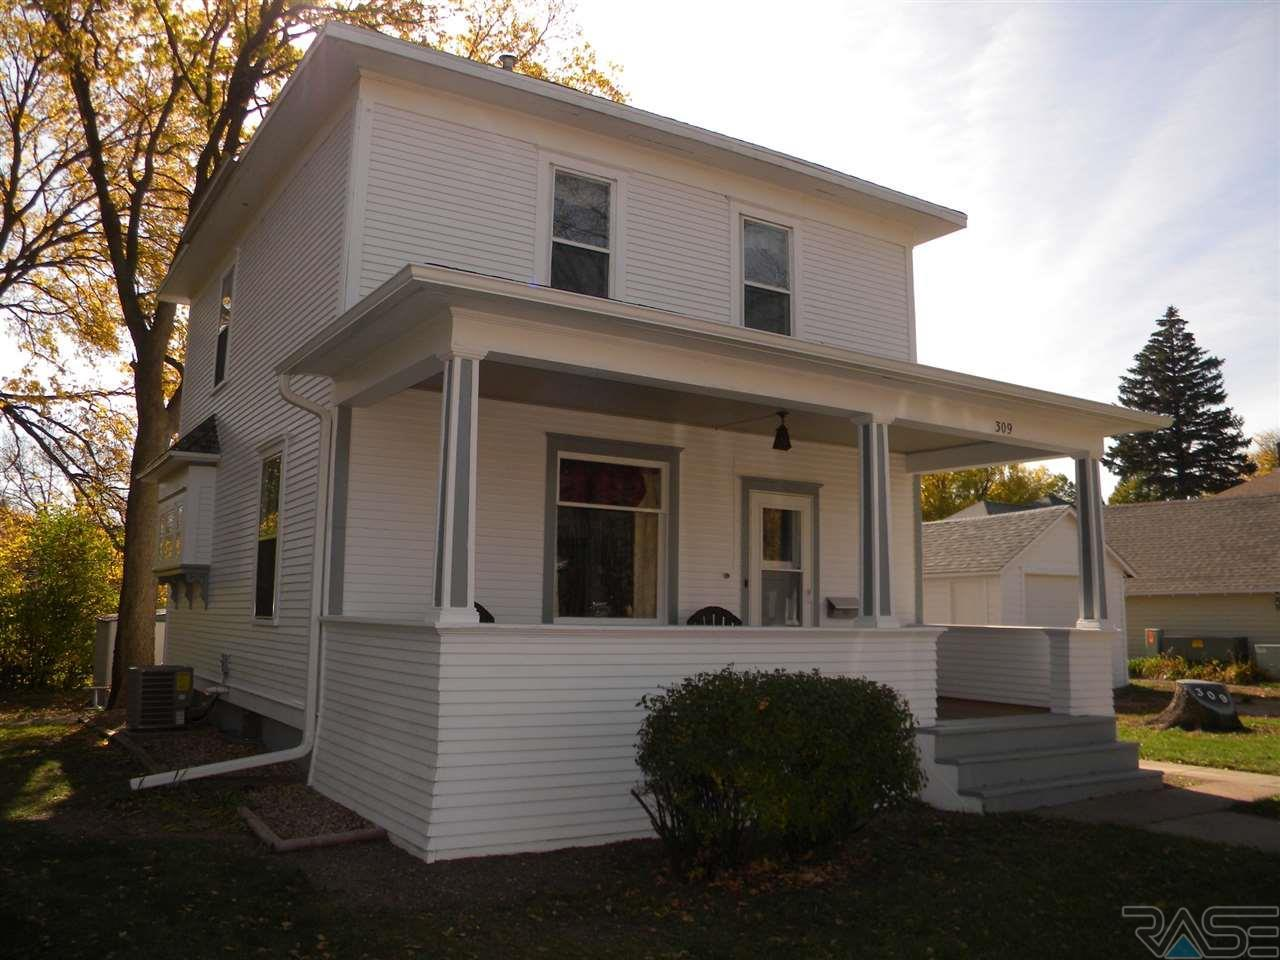 Open House at 309 NW 1st St Sunday at 3pm